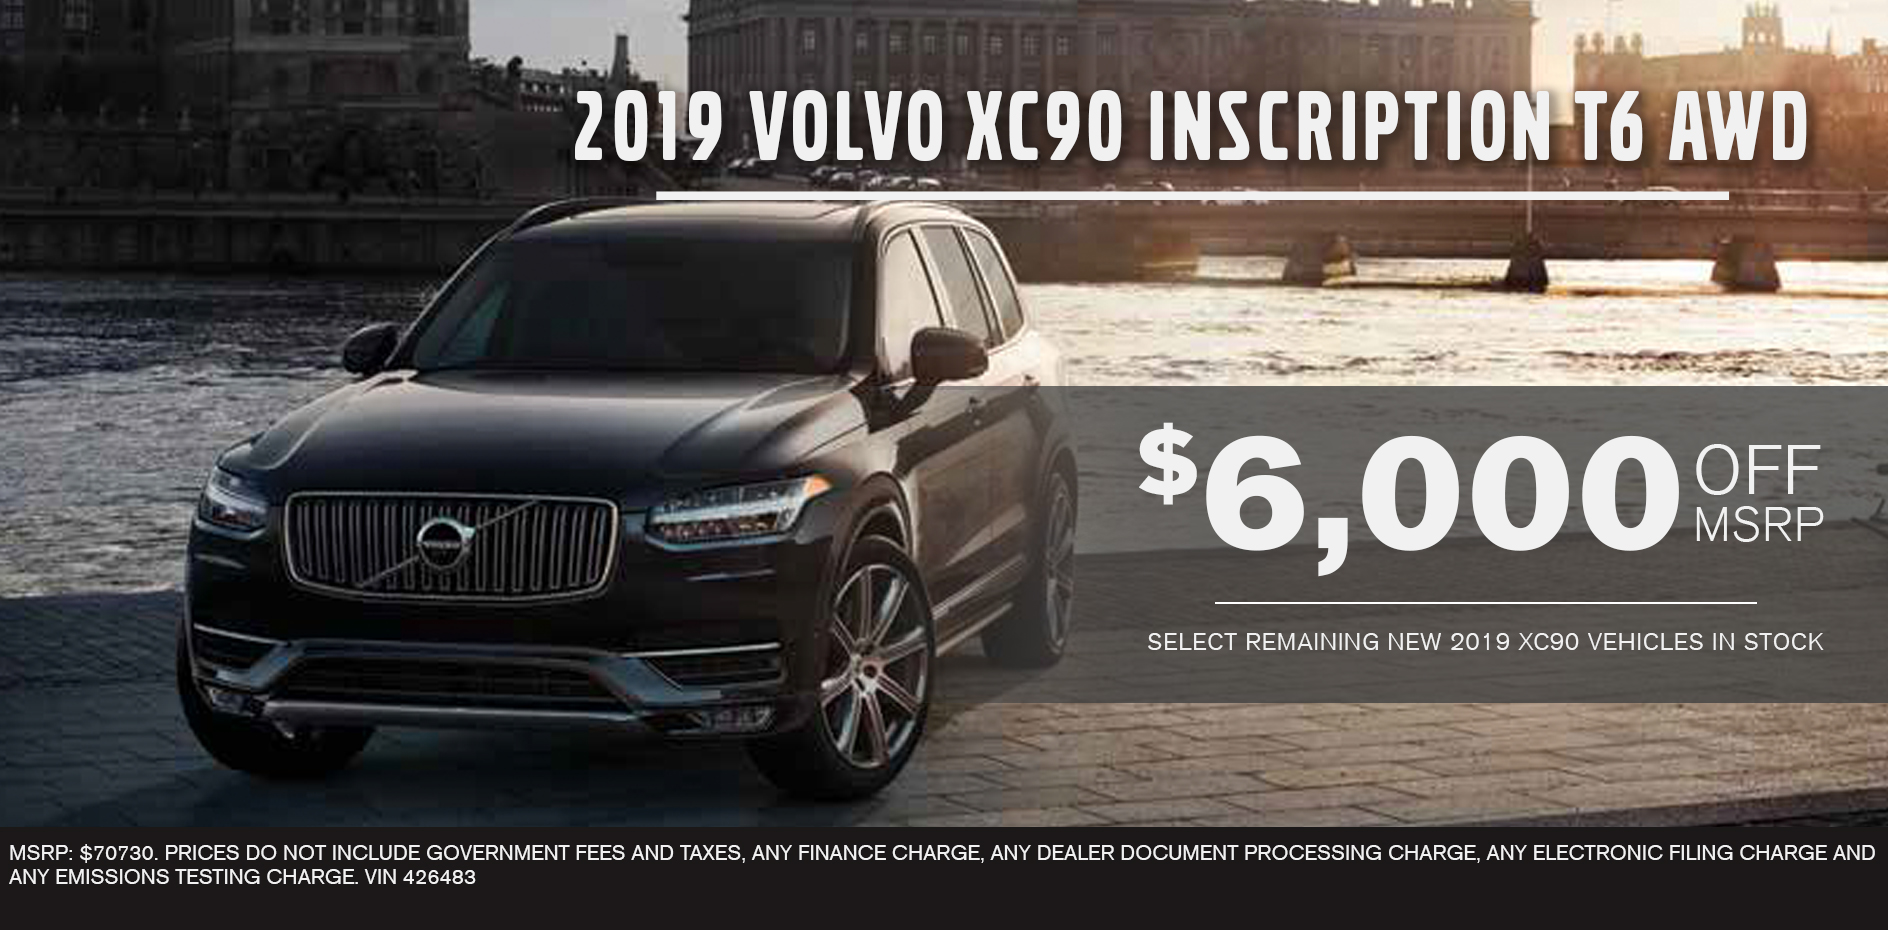 2019 Volvo XC90 Inscription T6 AWD